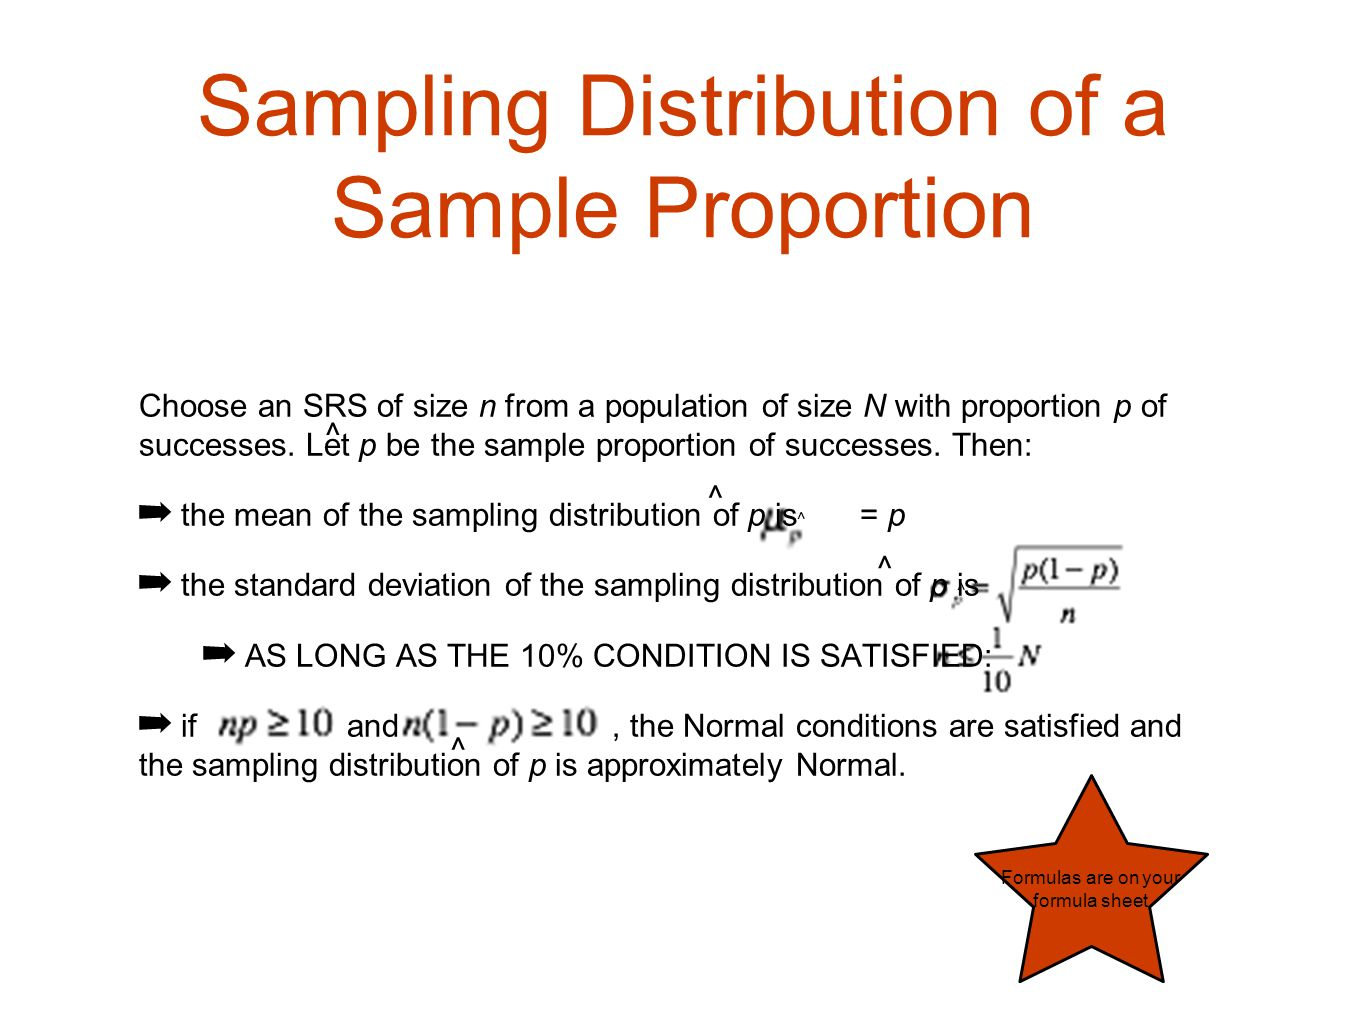 sampling distribution Sampling distribution is the probability distribution of a sample of a population instead of the entire population.